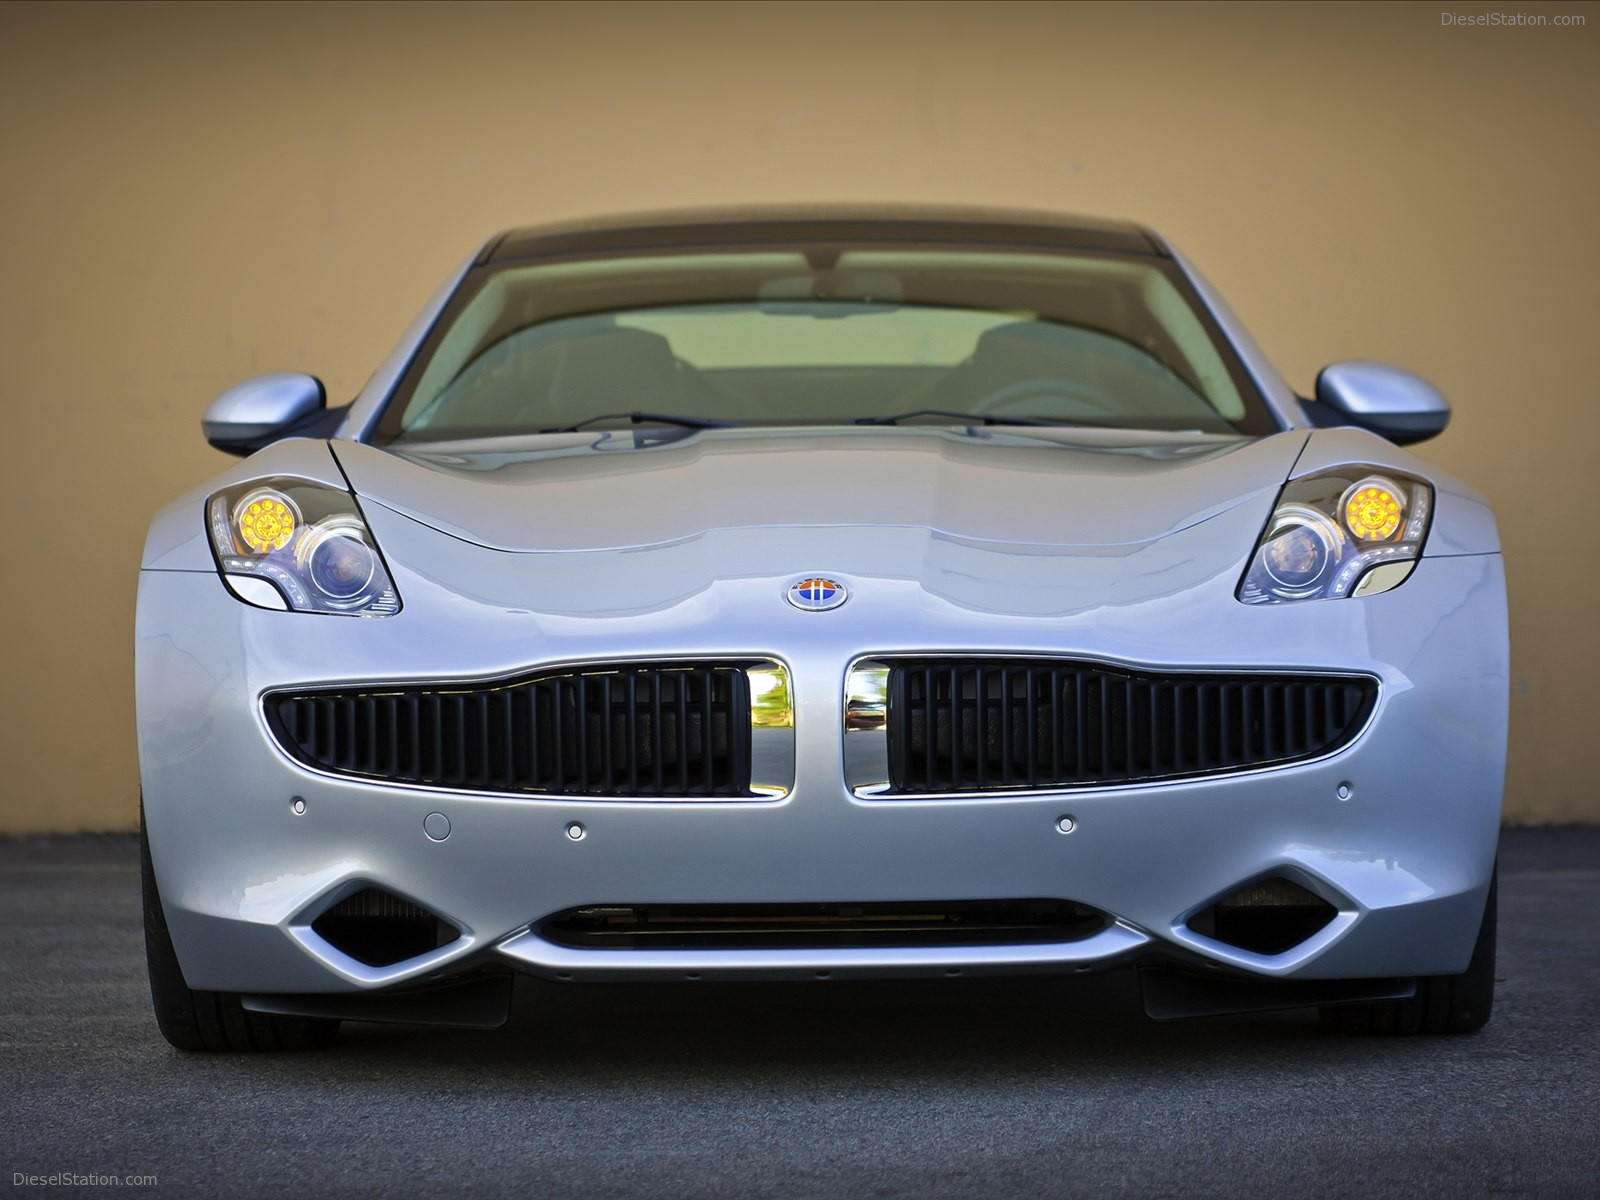 Perfectness at the highest level means Fisker 2012 Karms sedan #4